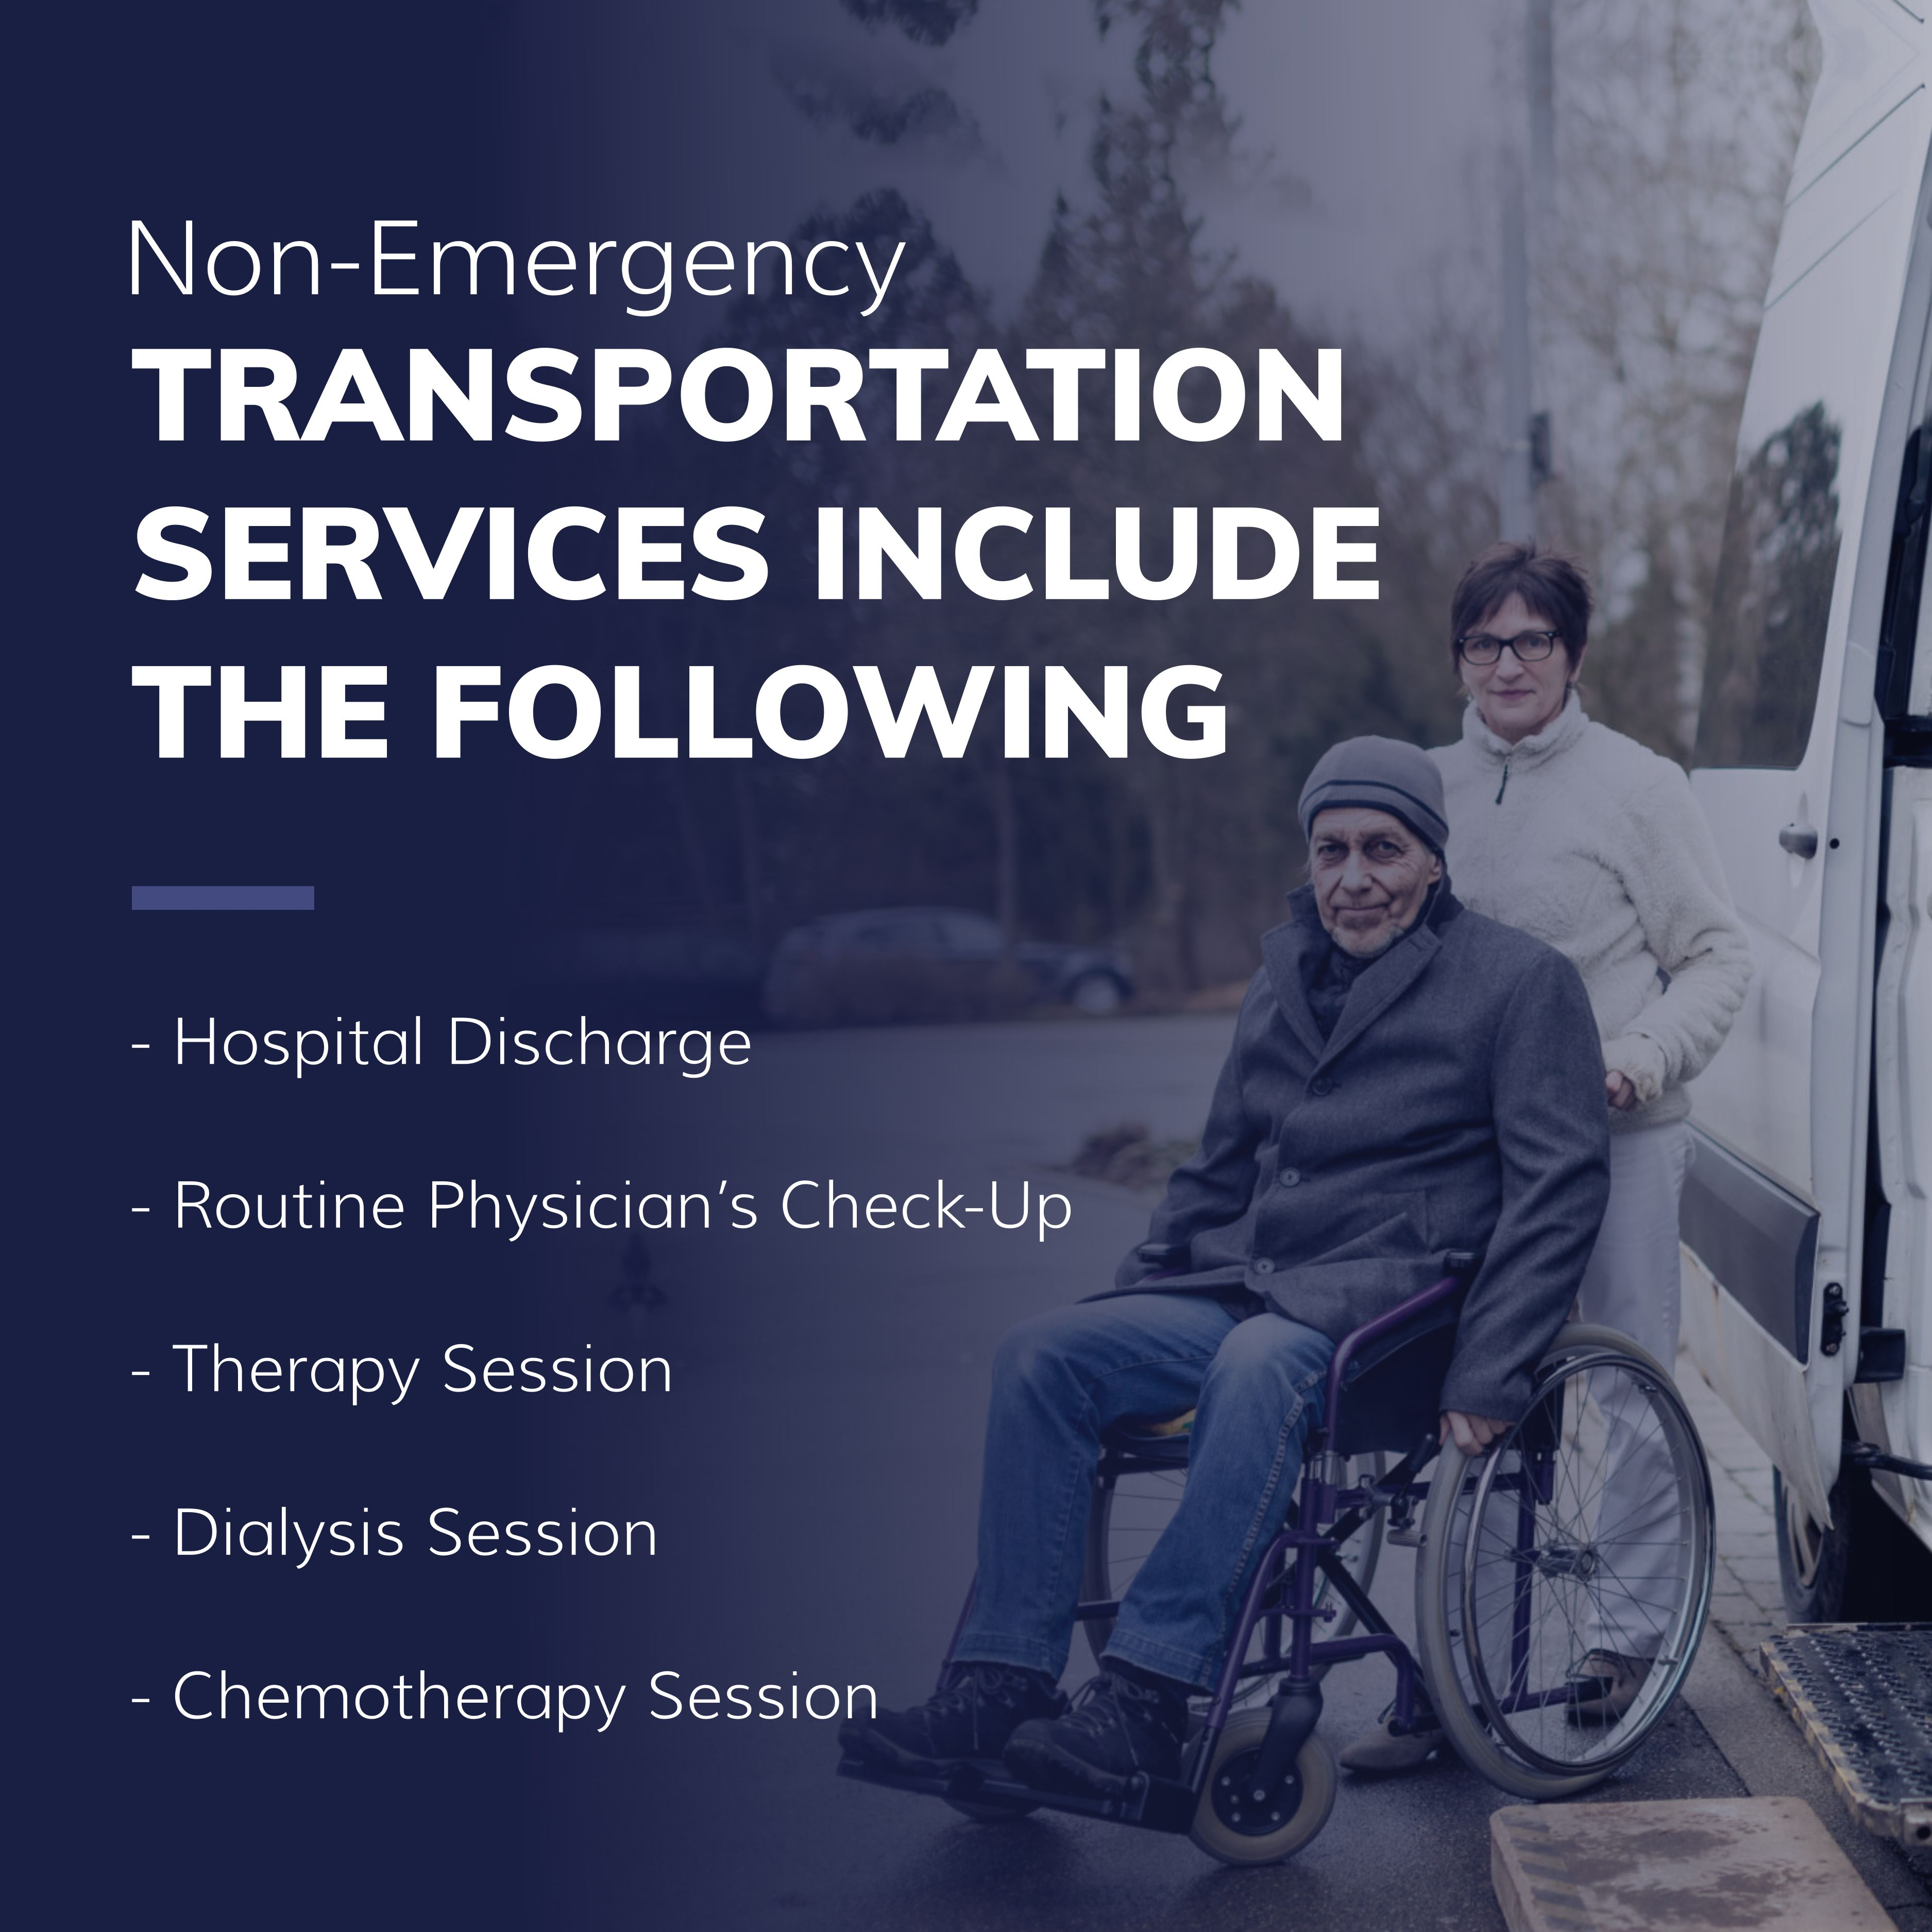 NonEmergency Transportation Services Include the